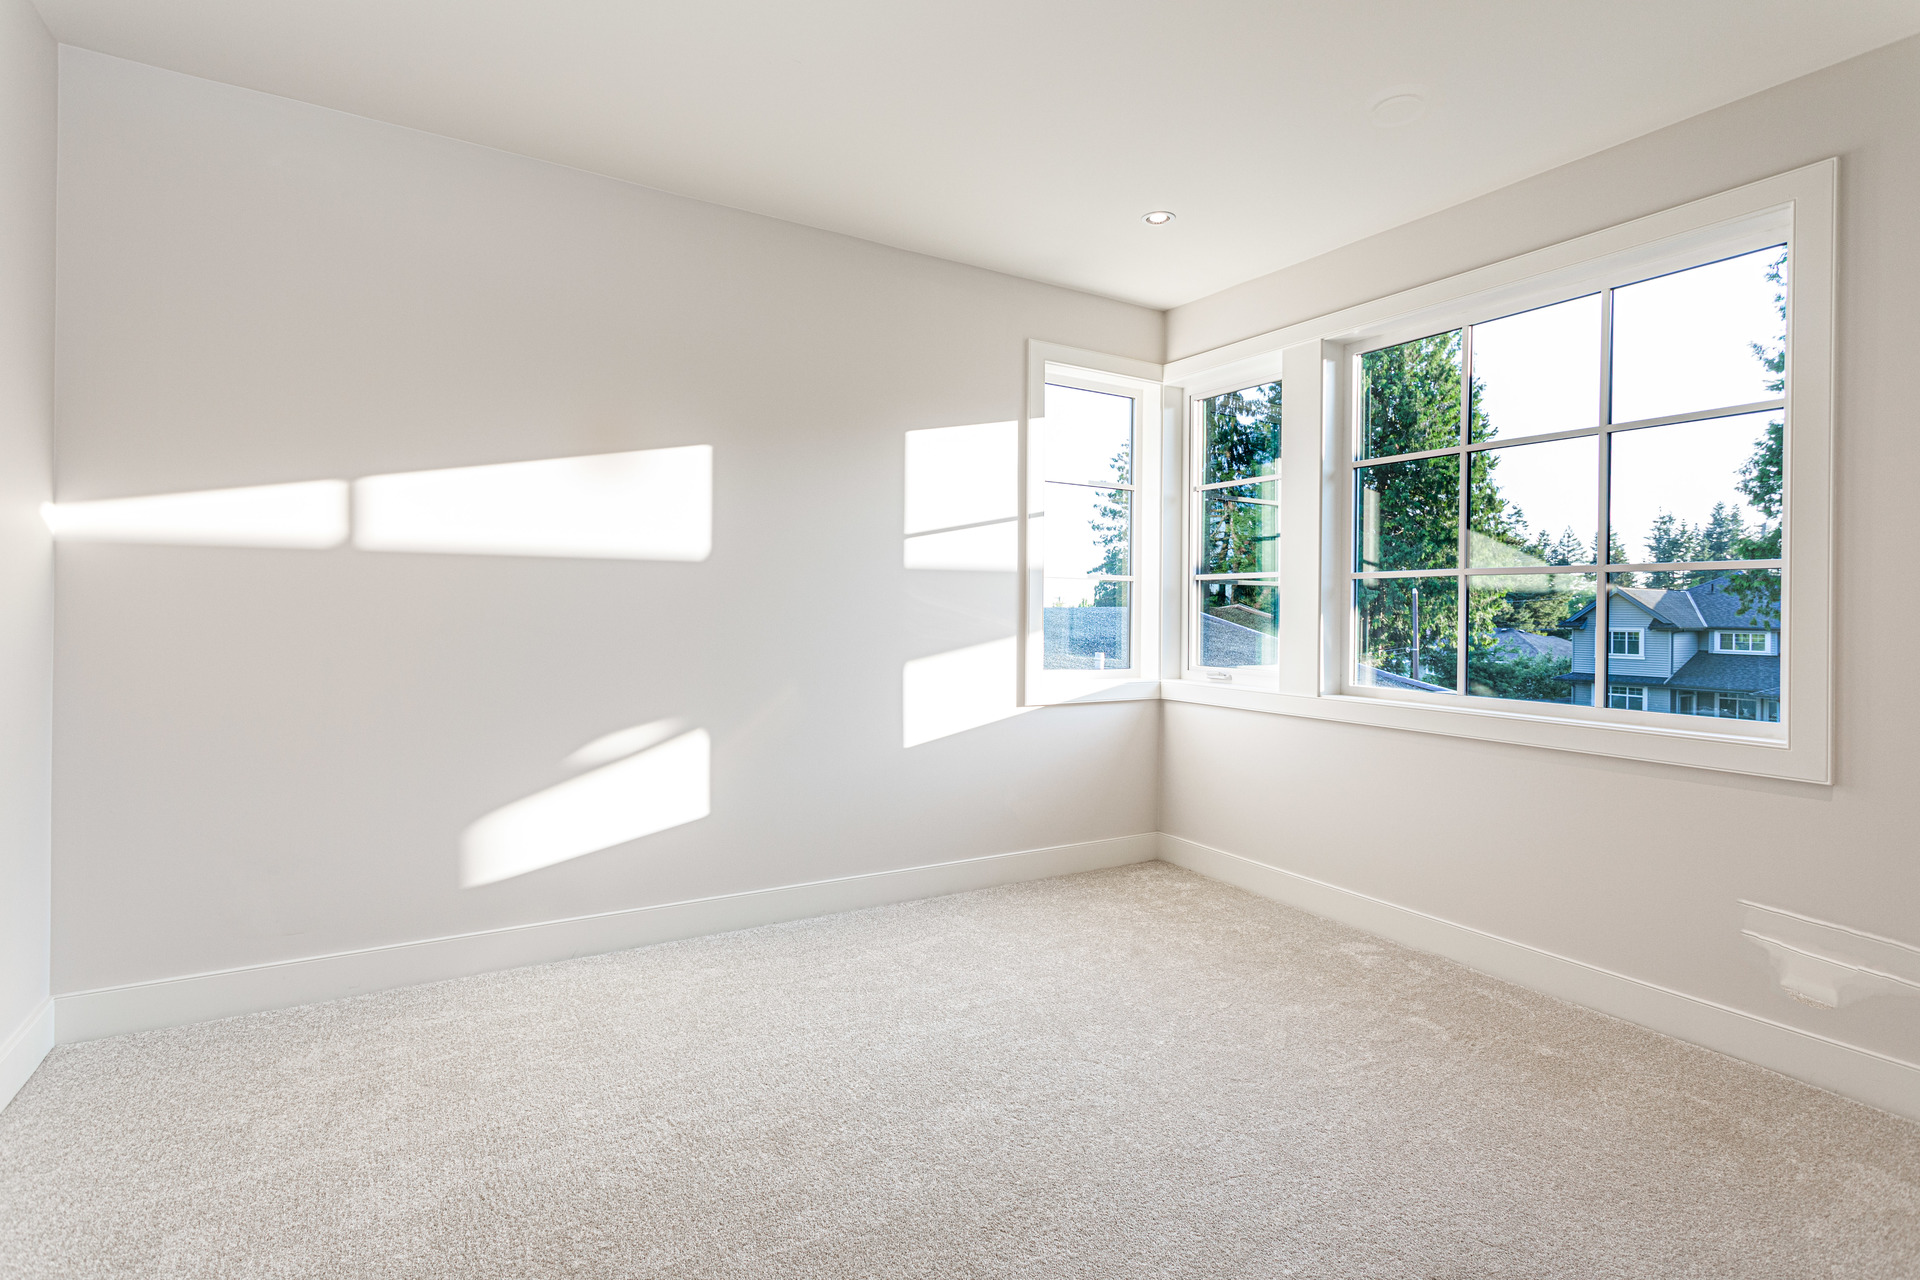 jh19 at 558 Berry Street, Central Coquitlam, Coquitlam